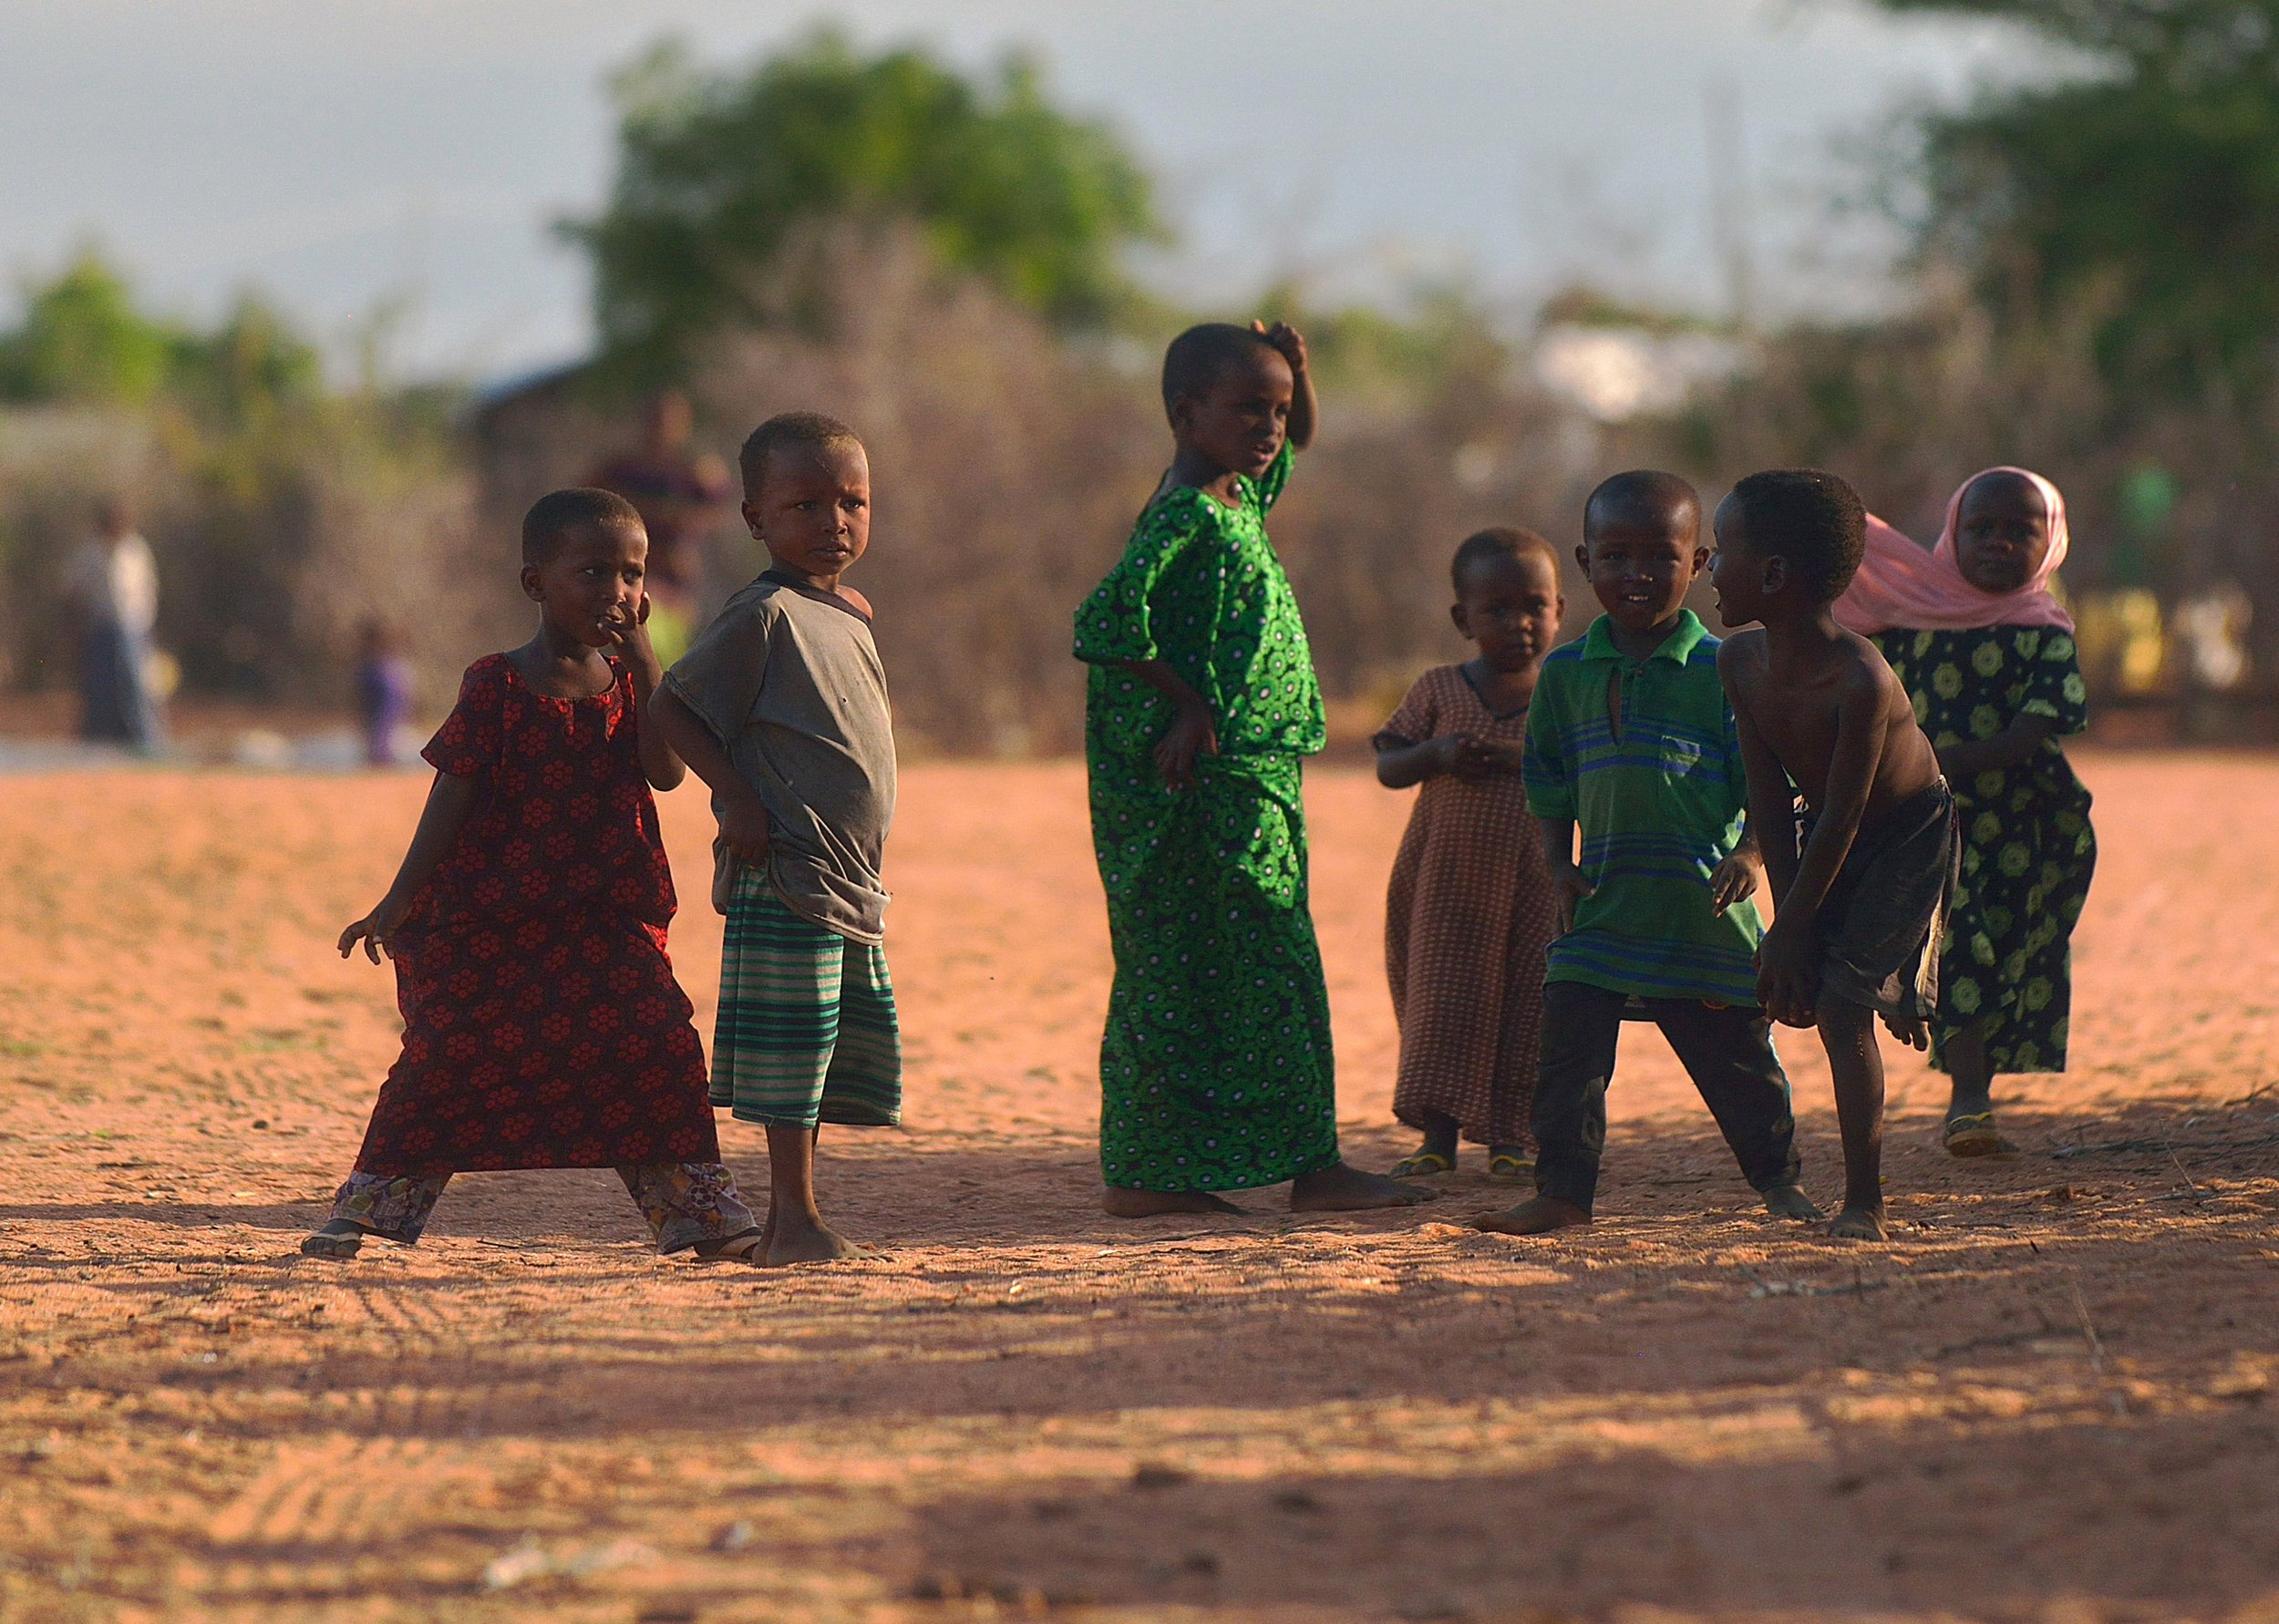 Somali refugee children in Dadaab